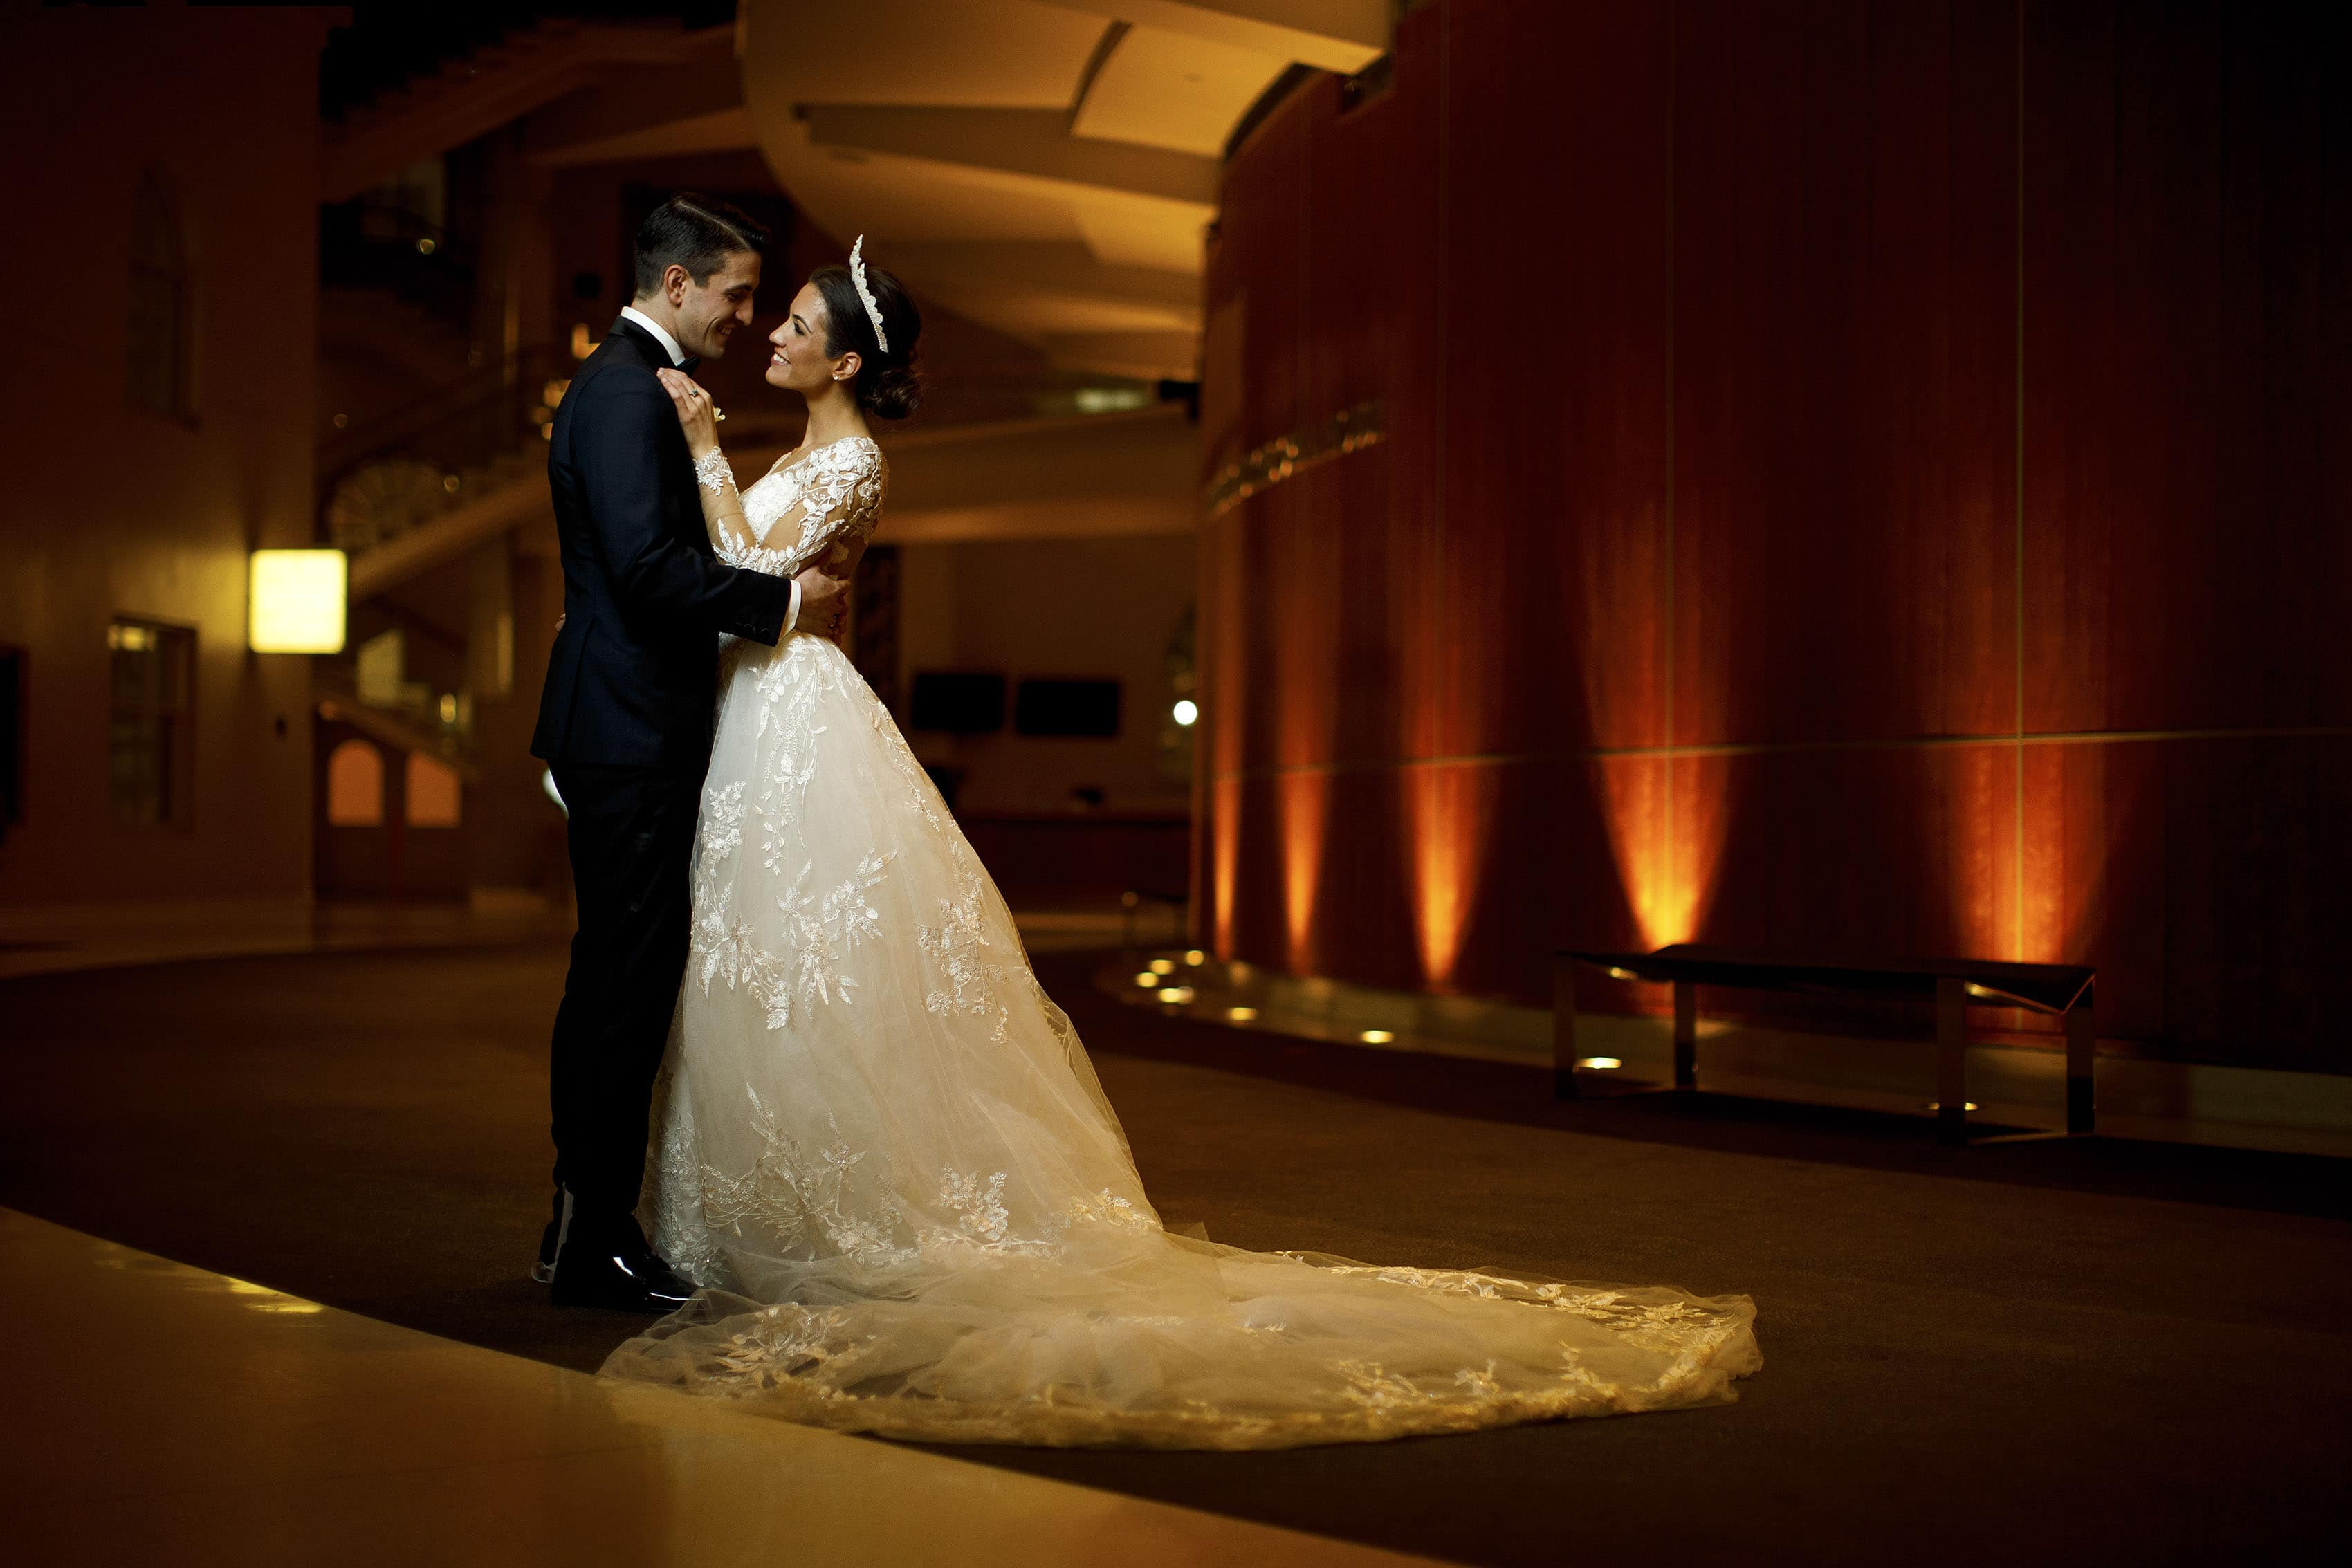 The newlyweds pose in the Ellie Caulkins Opera House Lobby at the Denver Center for the Performing Arts